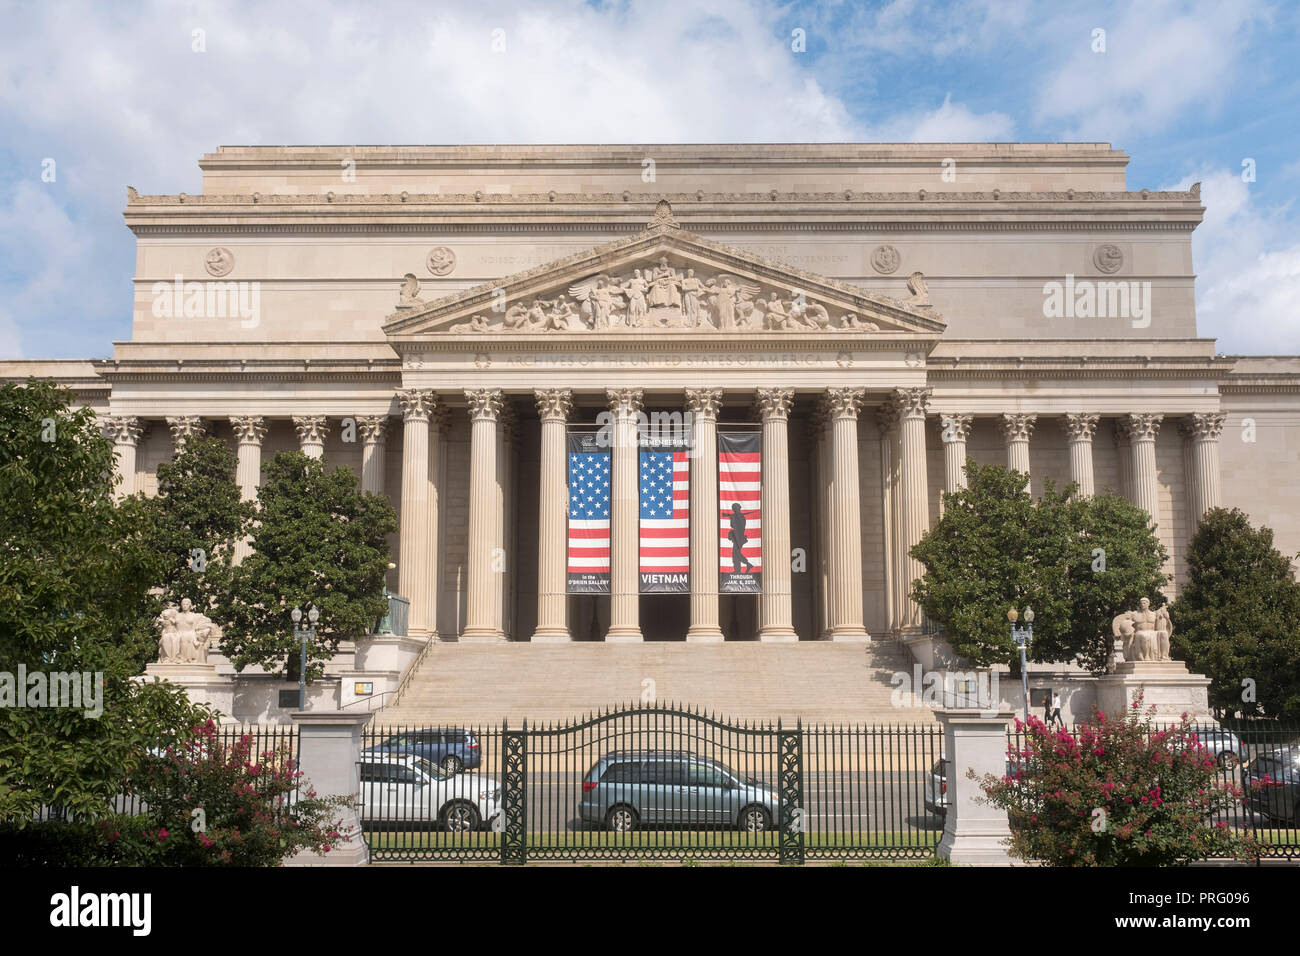 National Archives in Washington, DC, houses the original Declaration of Independence and the U.S. Constitution. Flag banner is for an exhibit on the V - Stock Image